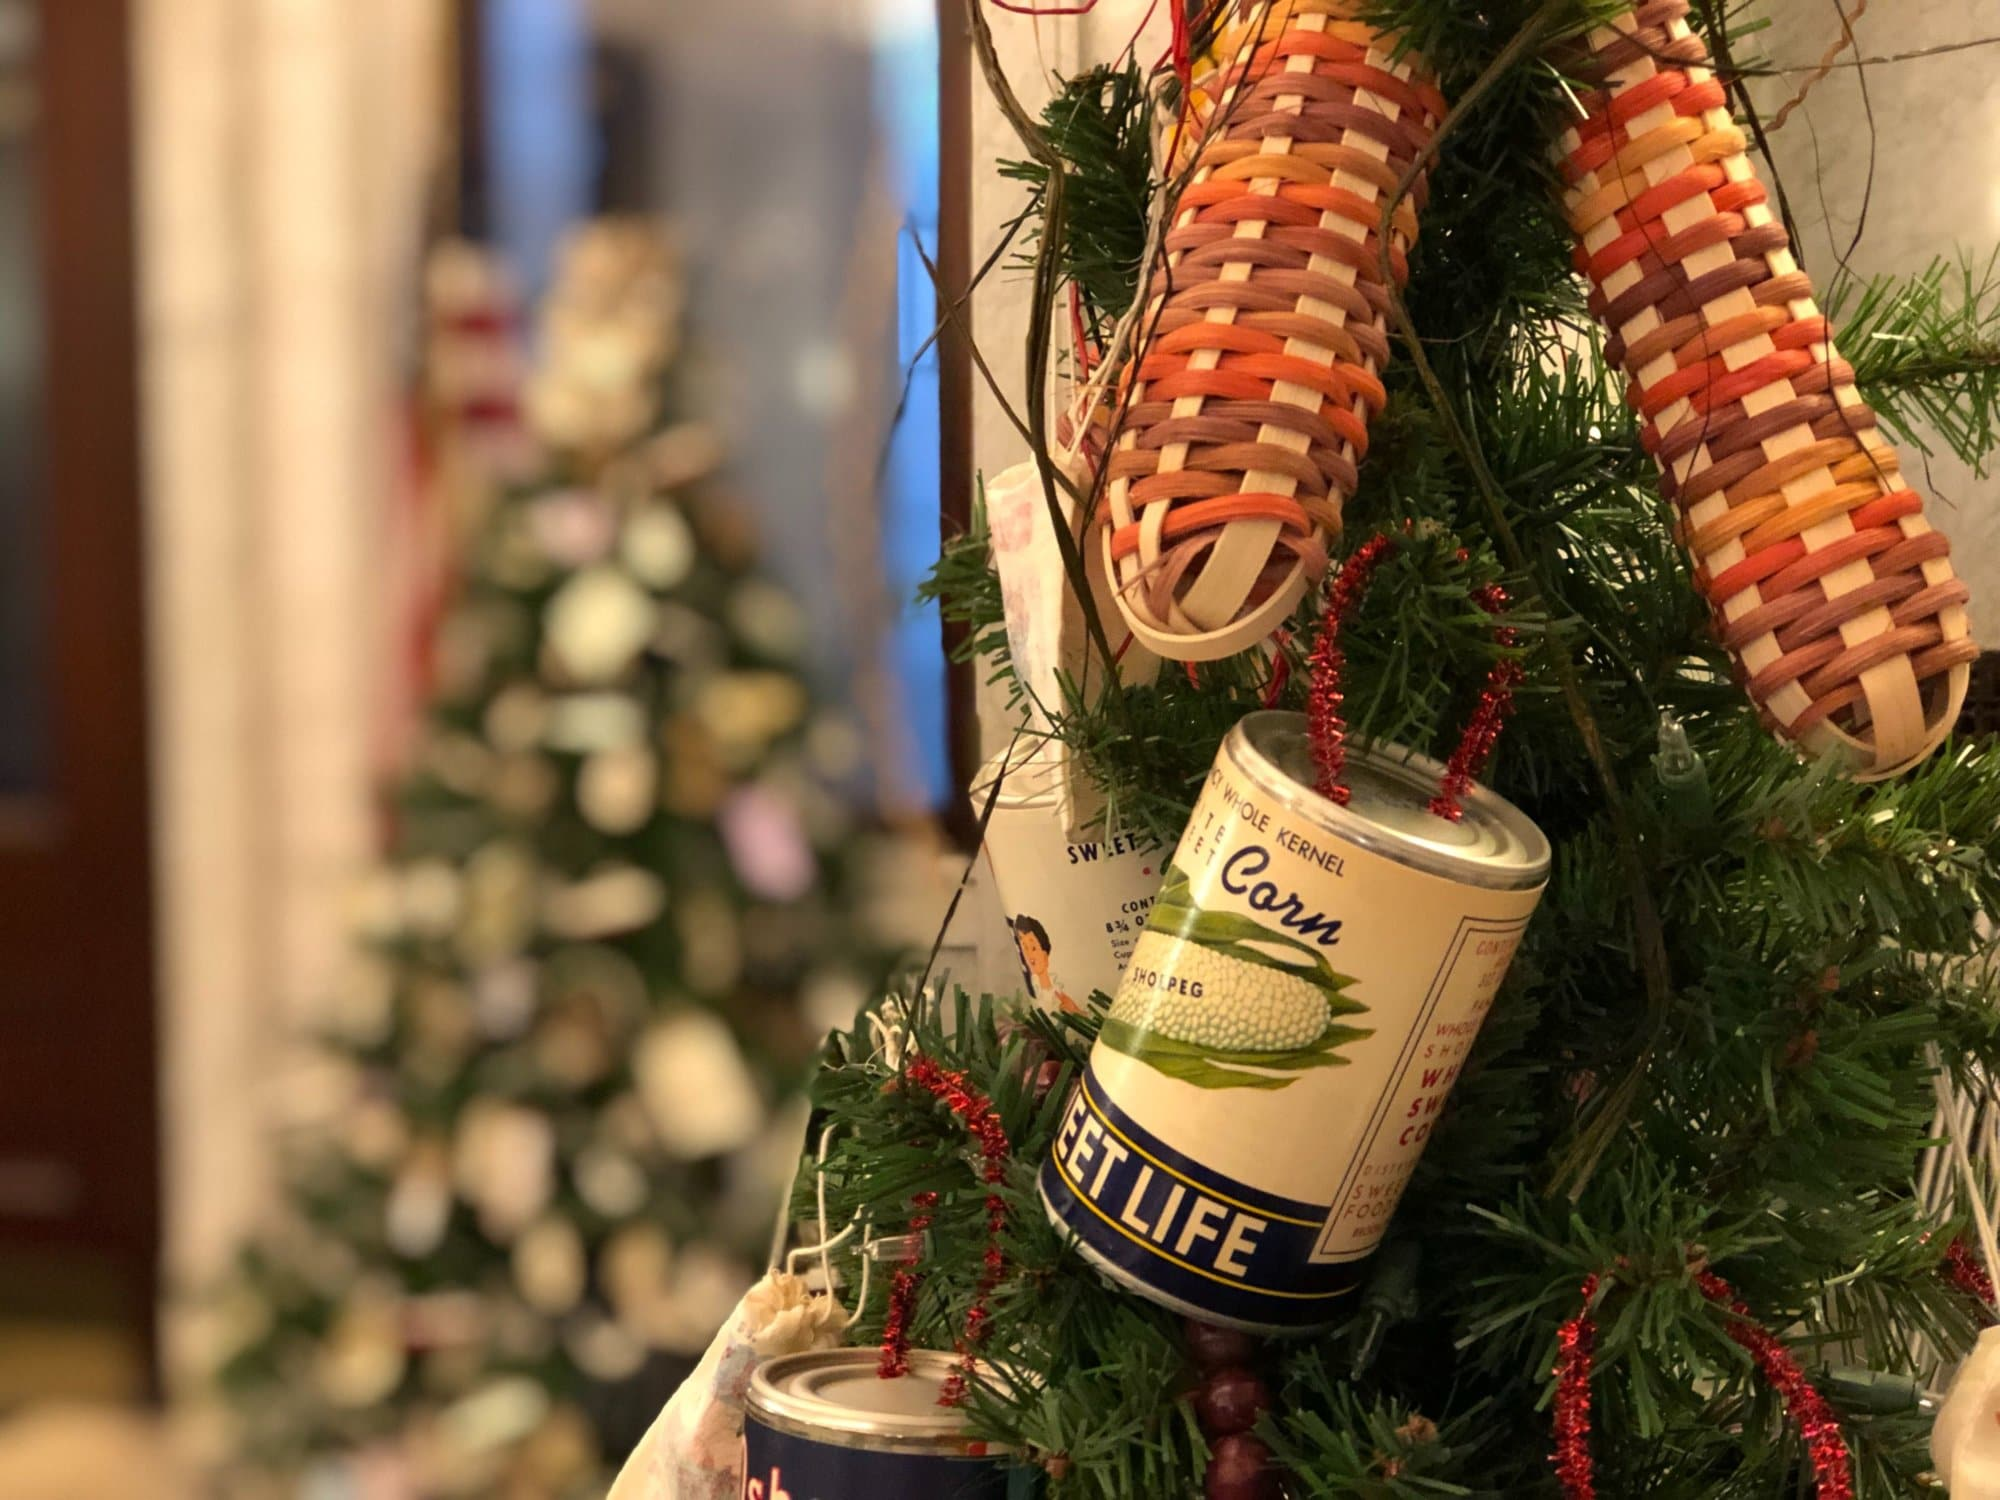 This Harford County, Md.-themed tree is decked with vintage produce cans, which reference the county's agricultural and manufacturing history. From the 1880s to the 1950s there were 700 canneries in Harford County alone. (WTOP/Kate Ryan)